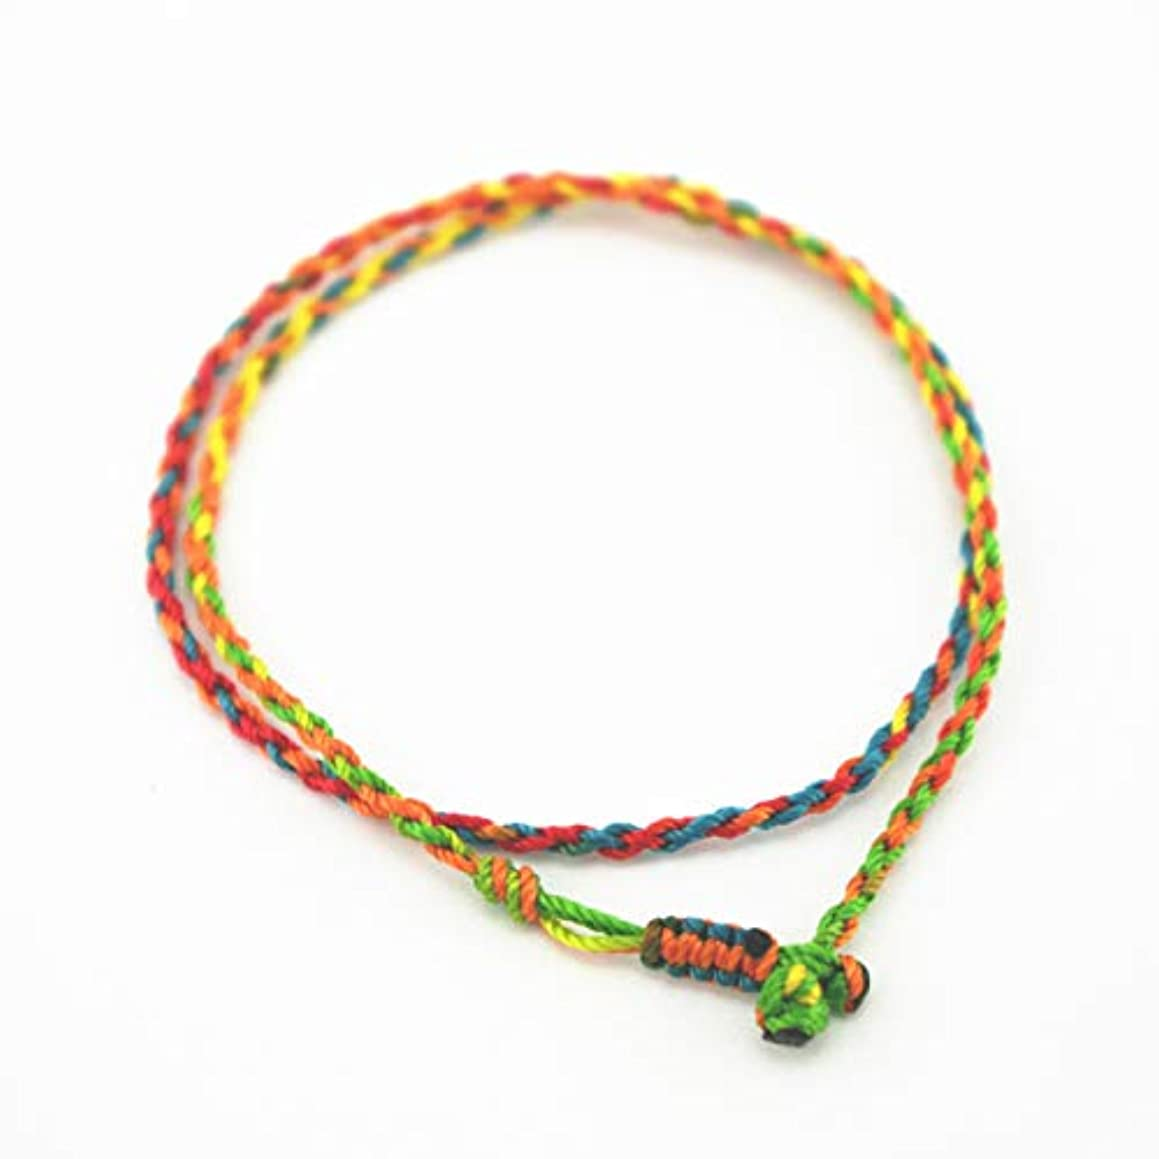 Glory Qin 2mm Hand Knitted Necklaces Colorful Rope DIY Rope Child Necklaces (16 Inches)